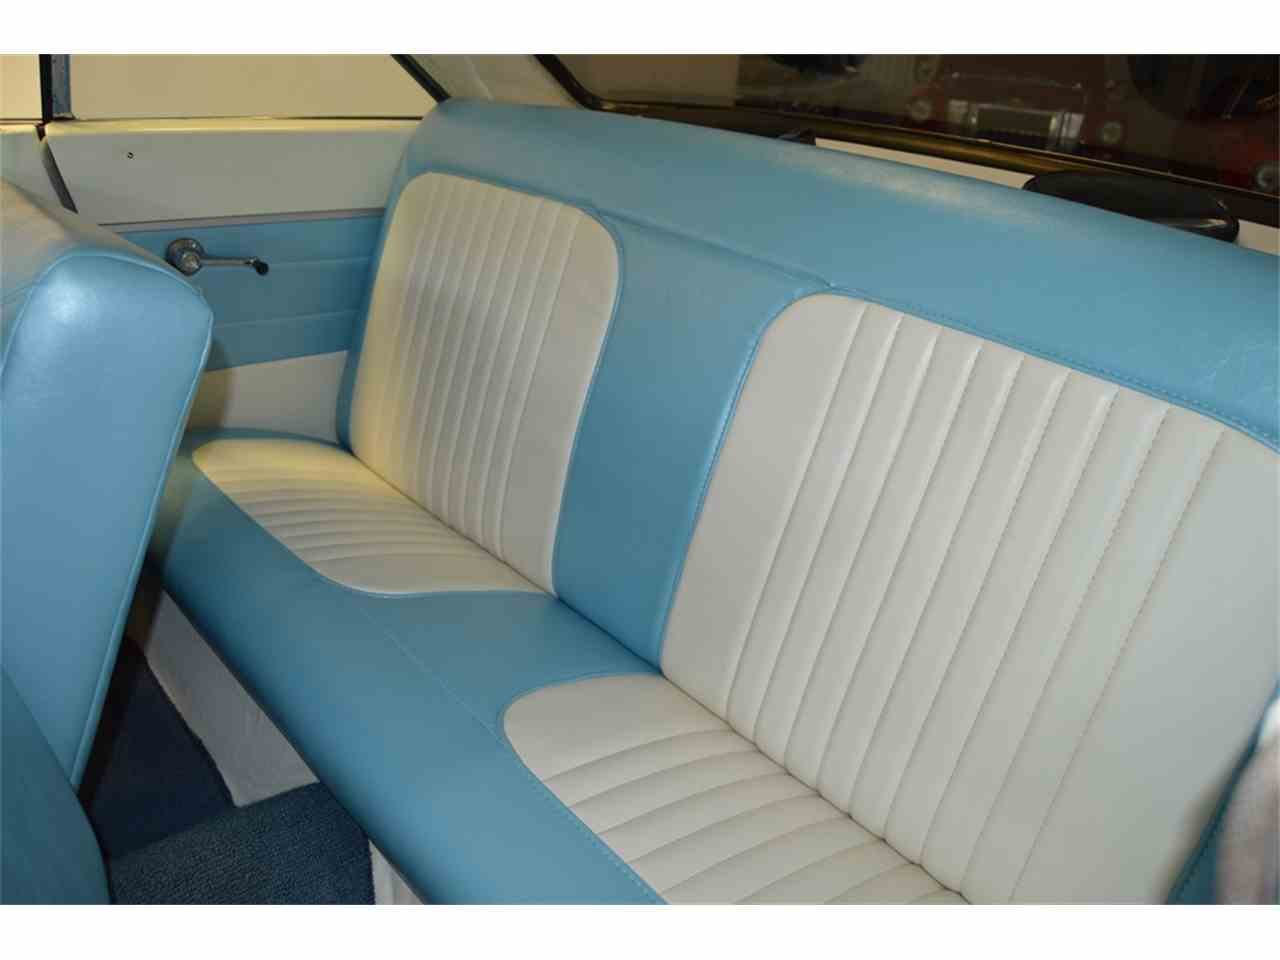 Large Picture of Classic 1963 Mercury Comet located in Loganville Georgia - $17,900.00 Offered by Sparky's Machines - LHYJ